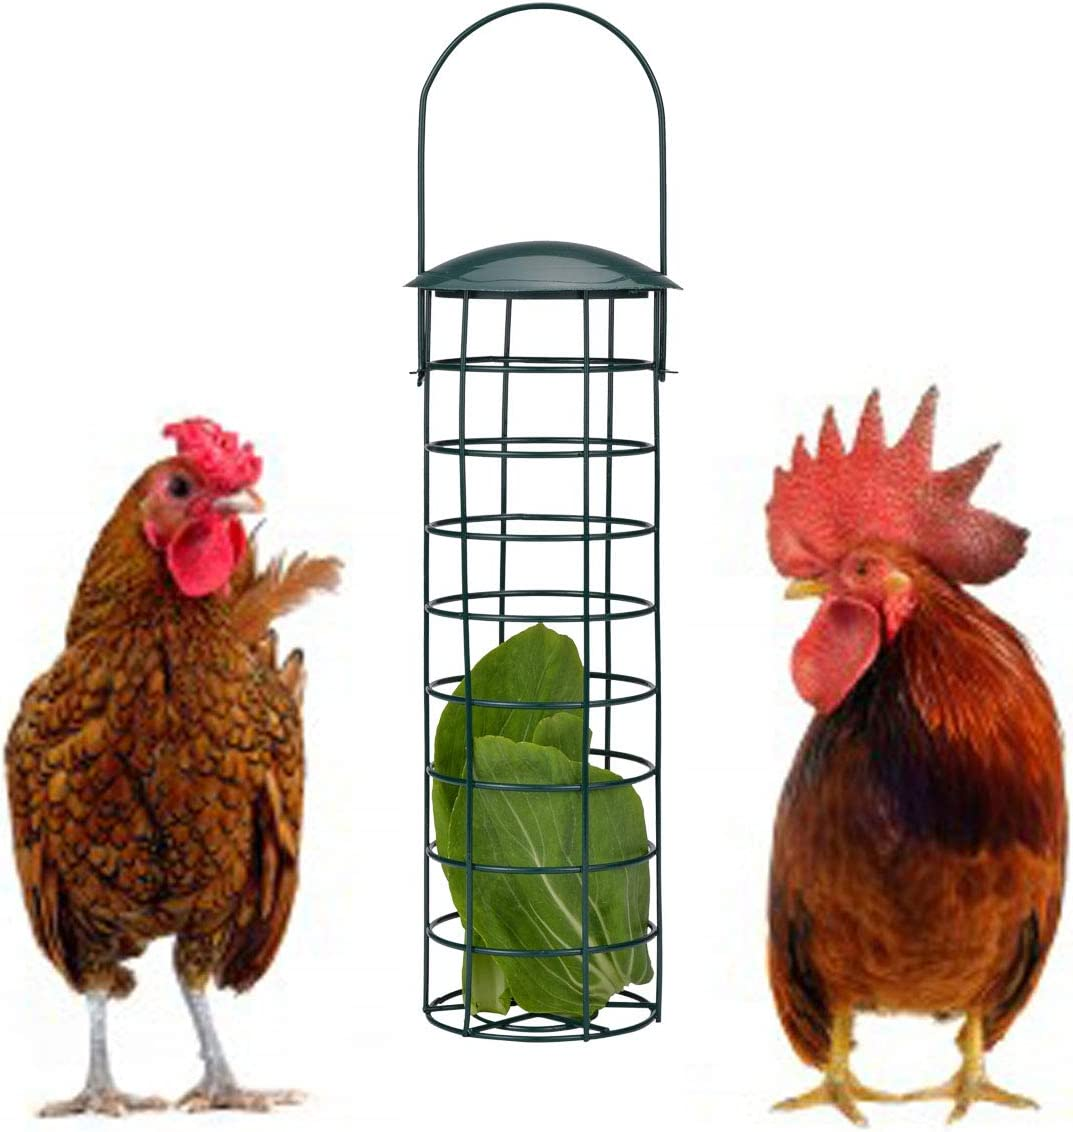 lanermoon Chicken Hanging Foraging Coop Toys for Hens, Iron Feeding Treat Box with Fruit Vetgetable for Parrot Bird Cage Feeder Toys